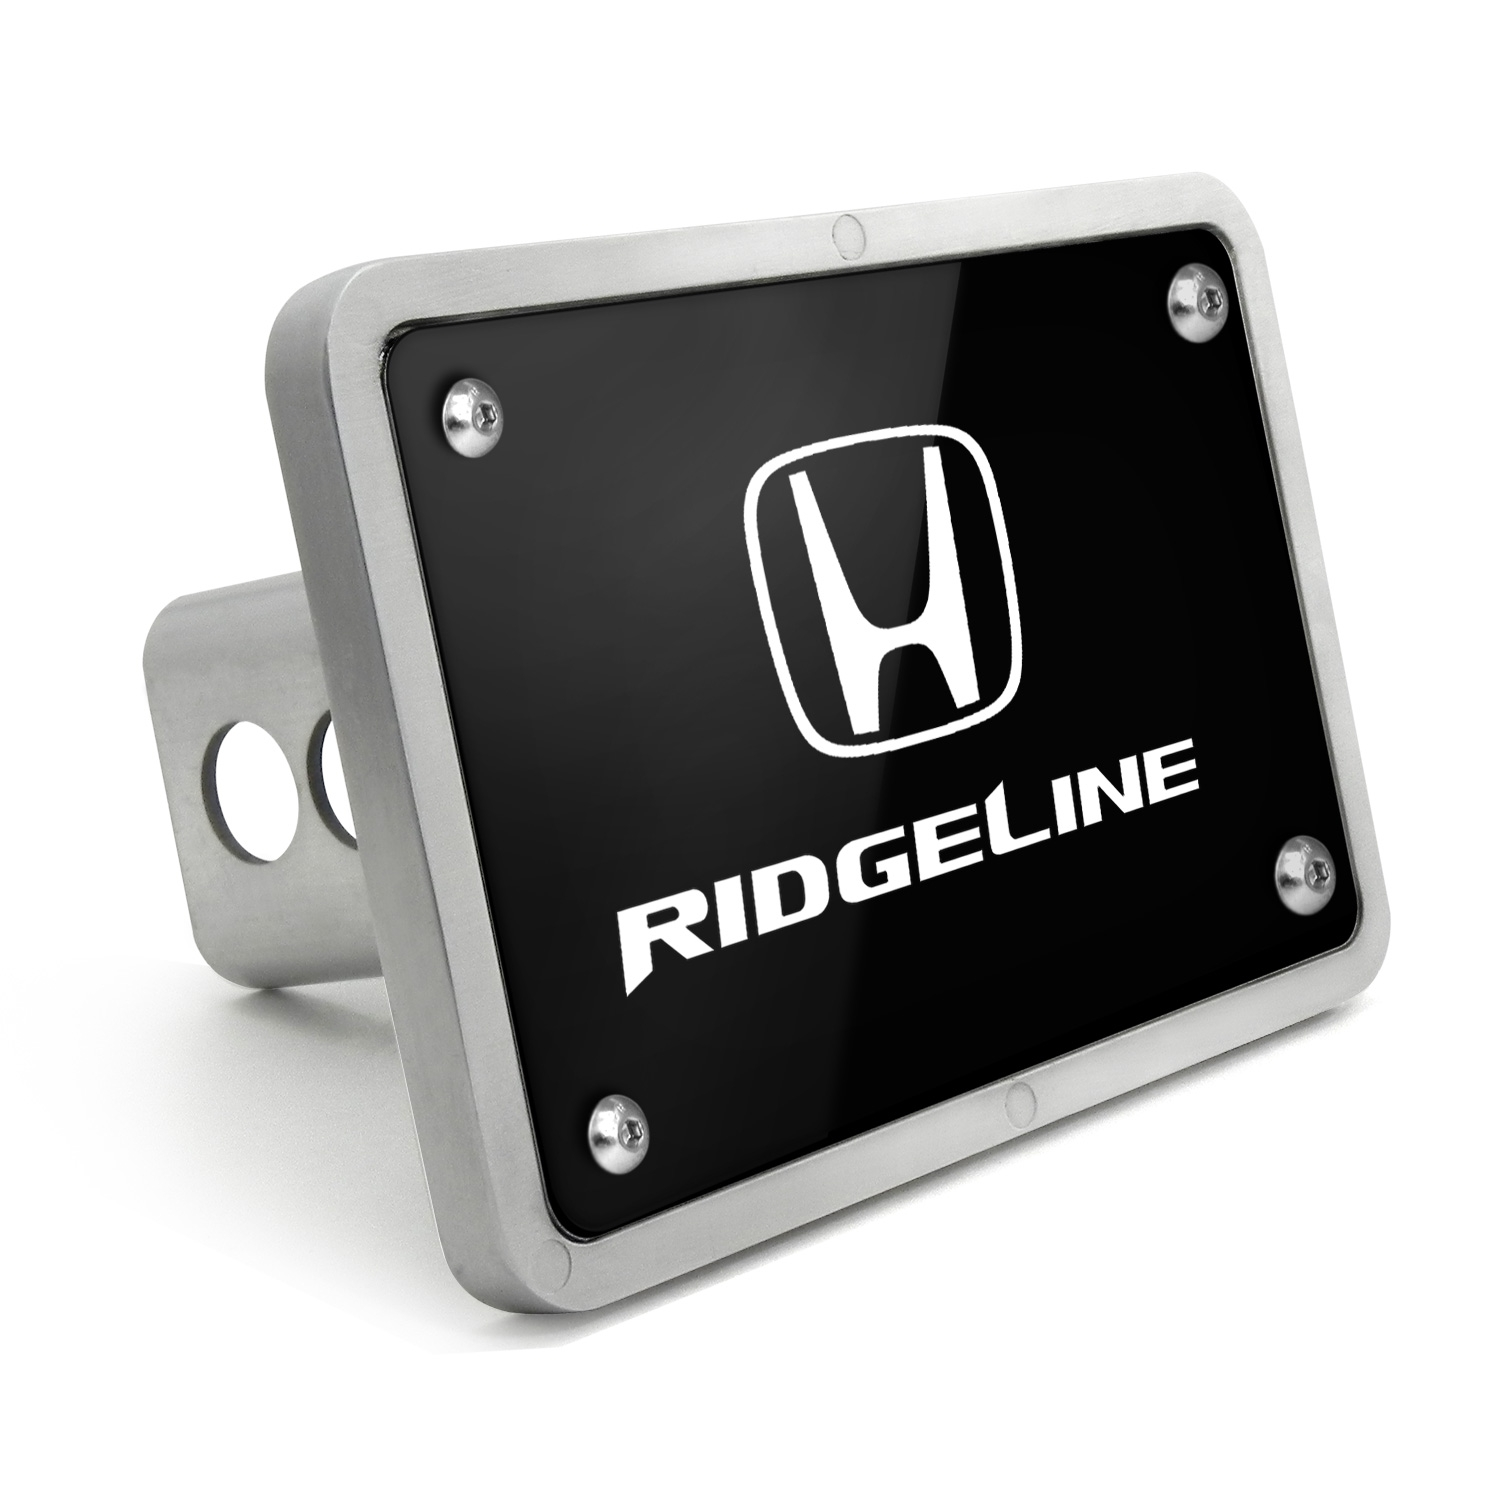 Honda Ridgeline UV Graphic Black Billet Aluminum 2 inch Tow Hitch Cover